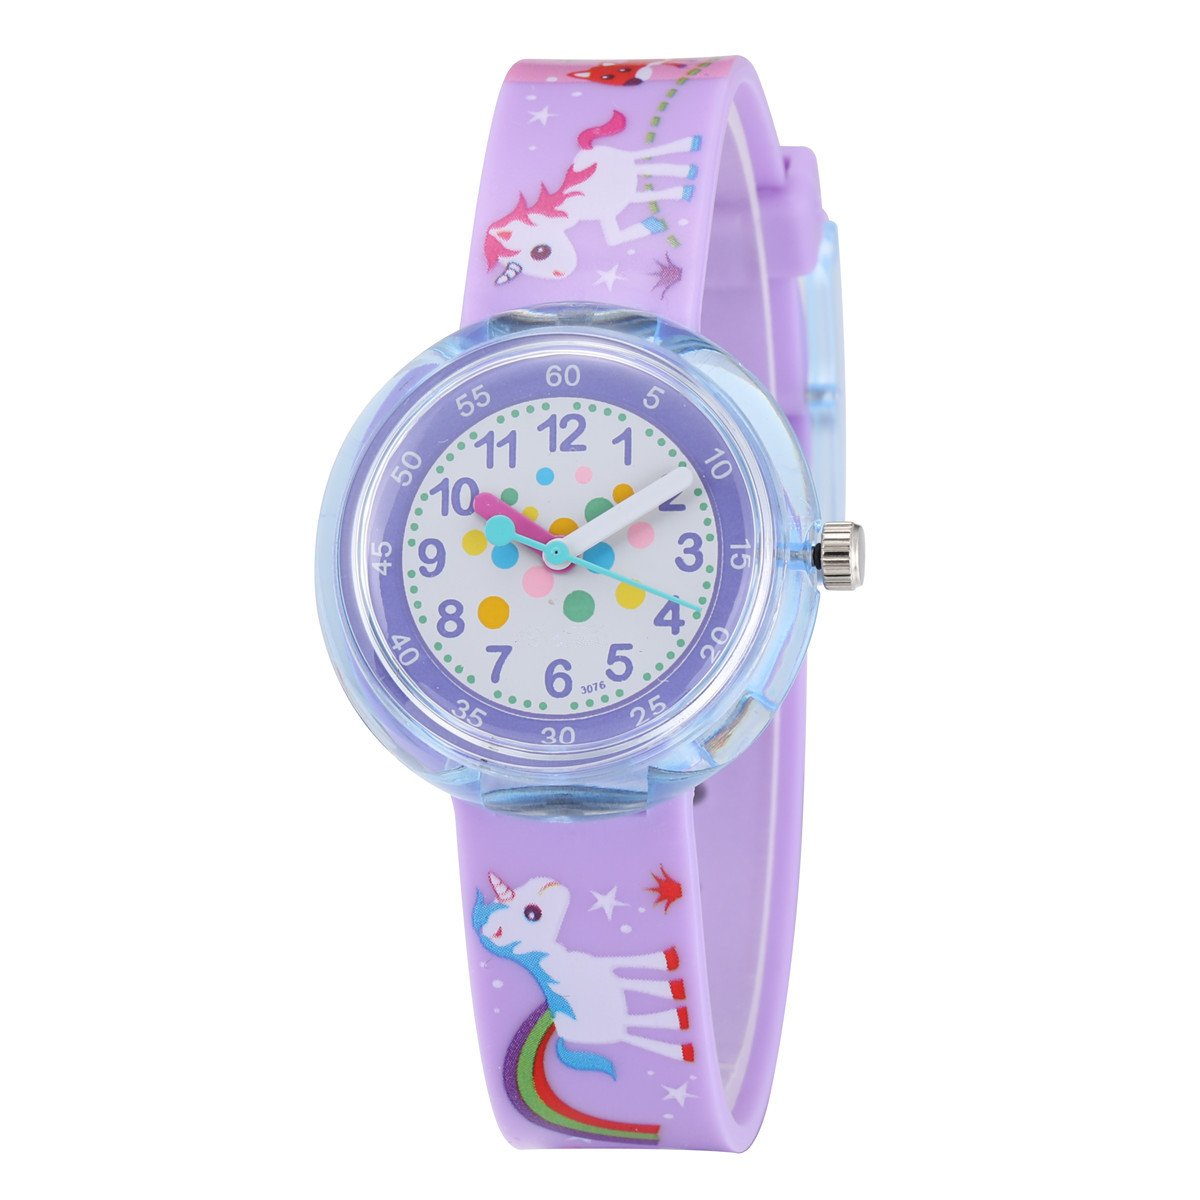 Jewtme Cute Toddler Children Kids Watches Ages 5-8 Analog Time Teacher 3D Silicone Band Cartoon Watch for Little Girls Boys-Horse Purple by Jewtme